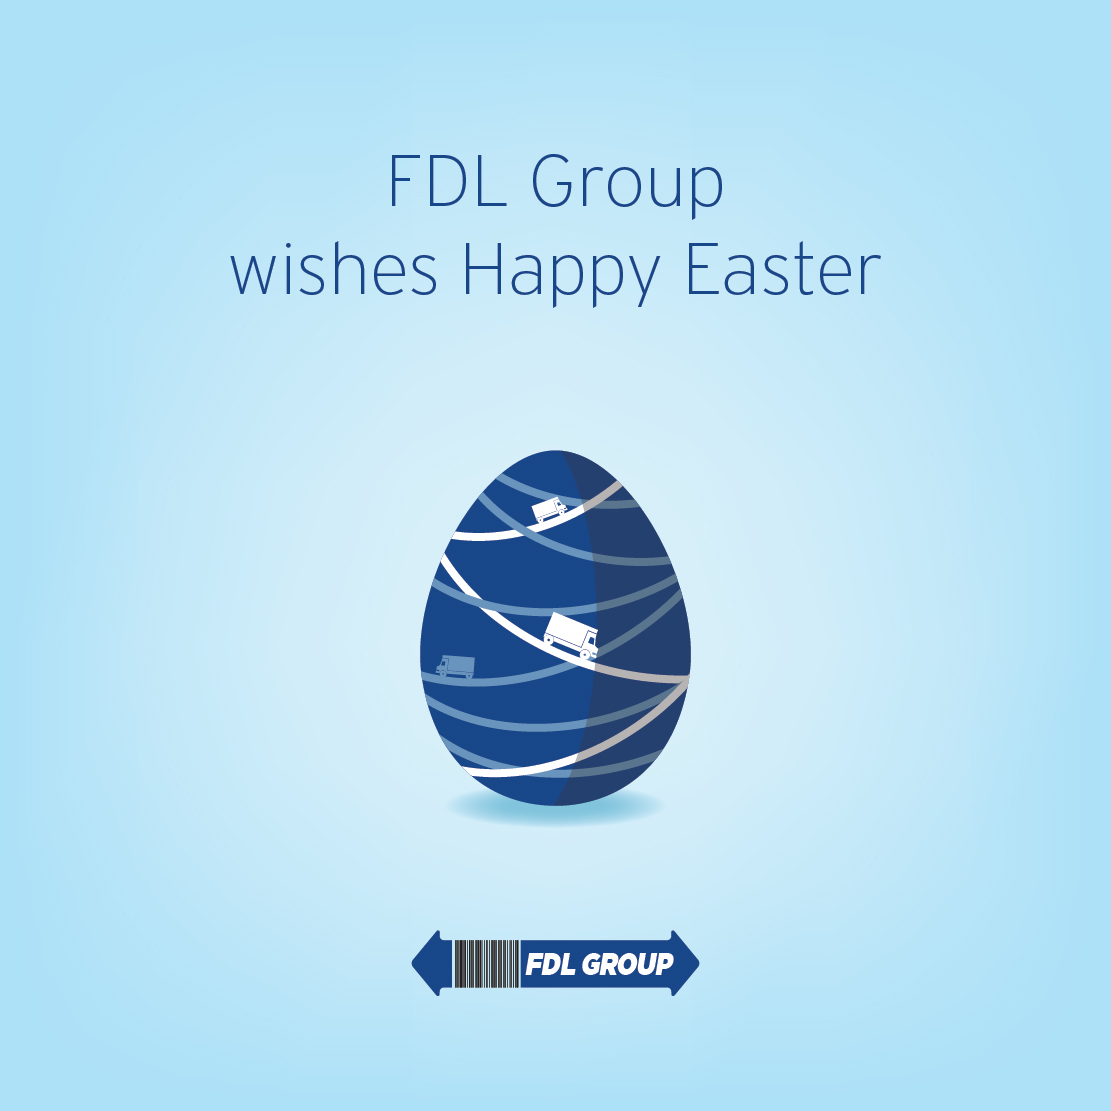 FDL Group wishes Happy Easter